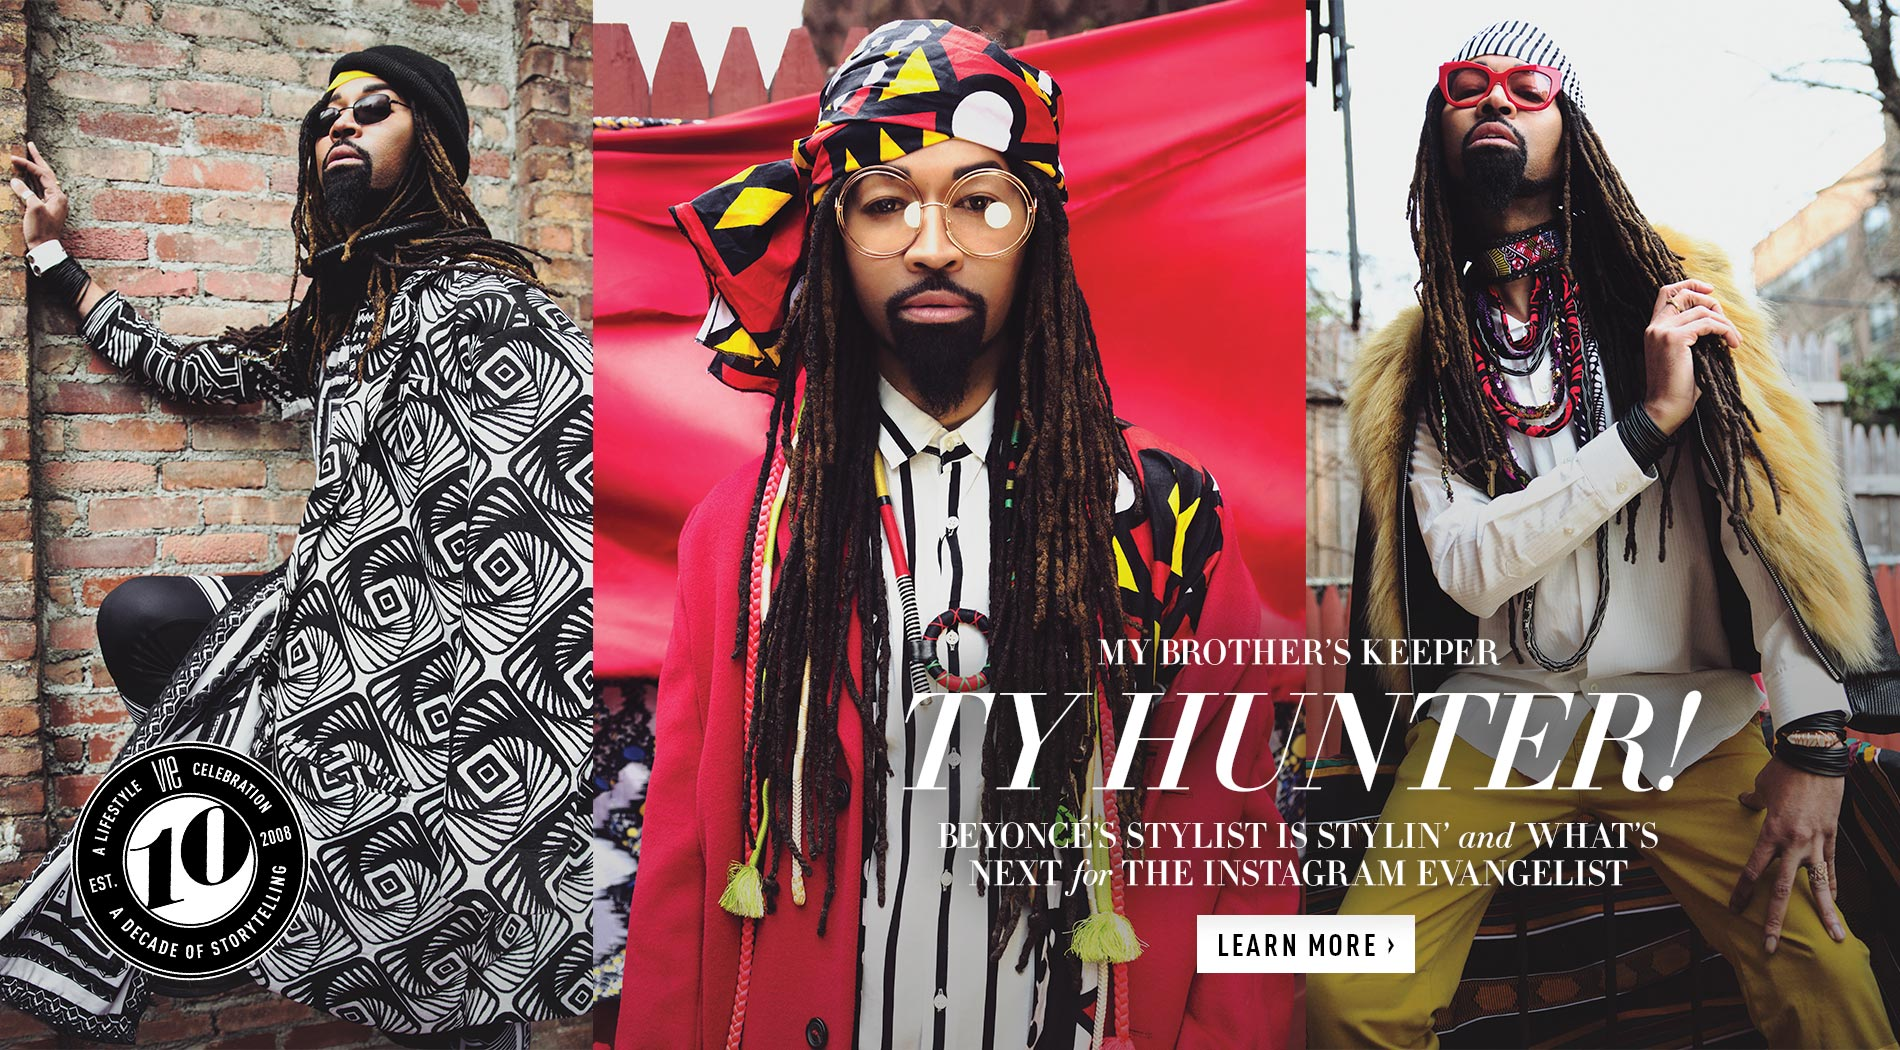 VIE Magazine - The Art & Culture Issue - October 2018 - Ty Hunter